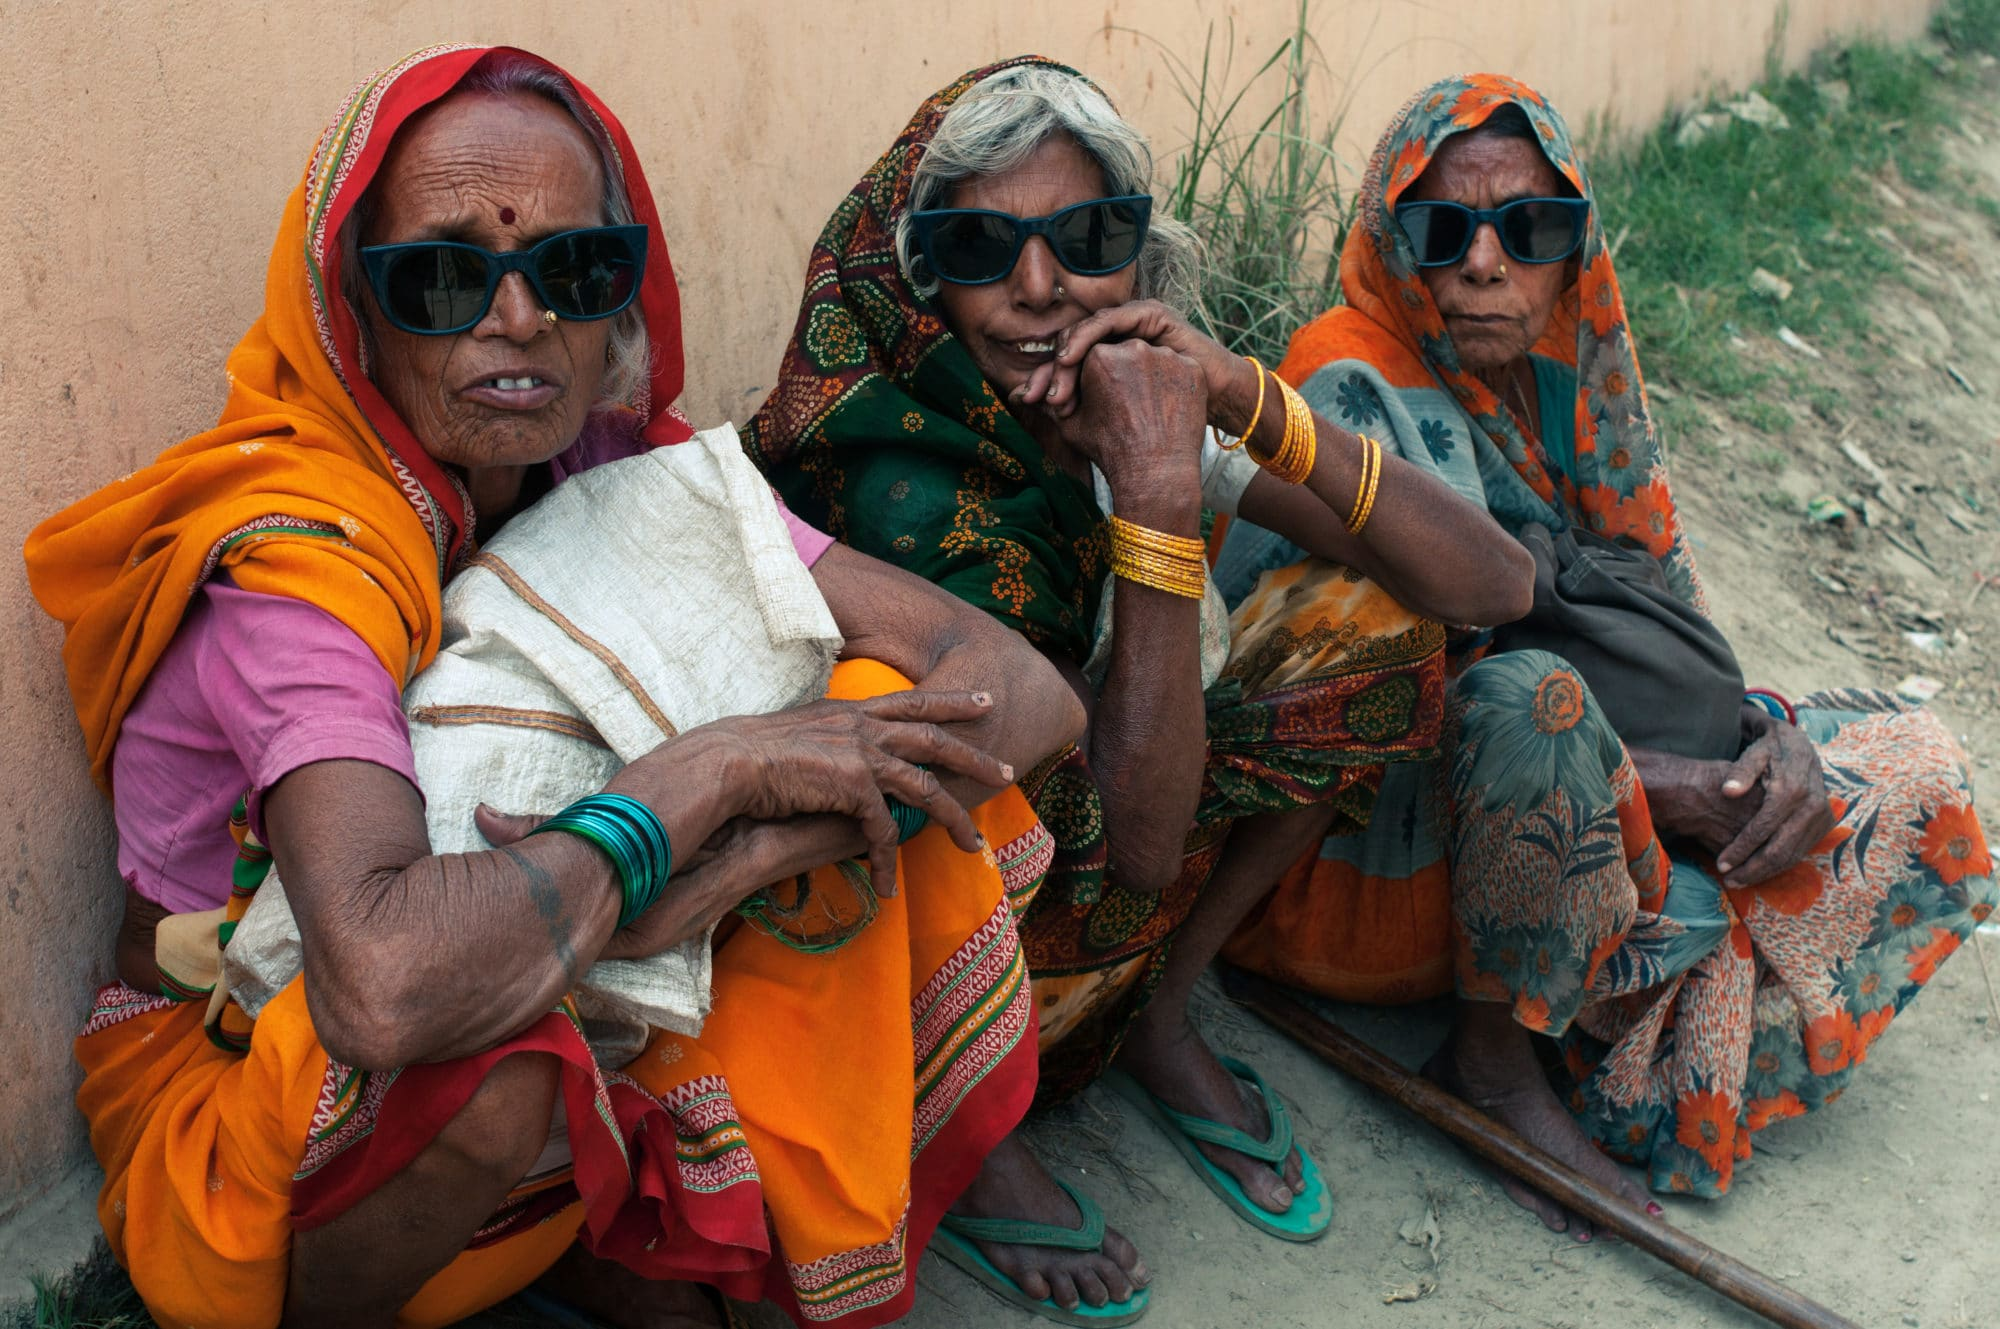 Three Indian cataract patients sit next to a building, all wearing matching protective sunglasses.